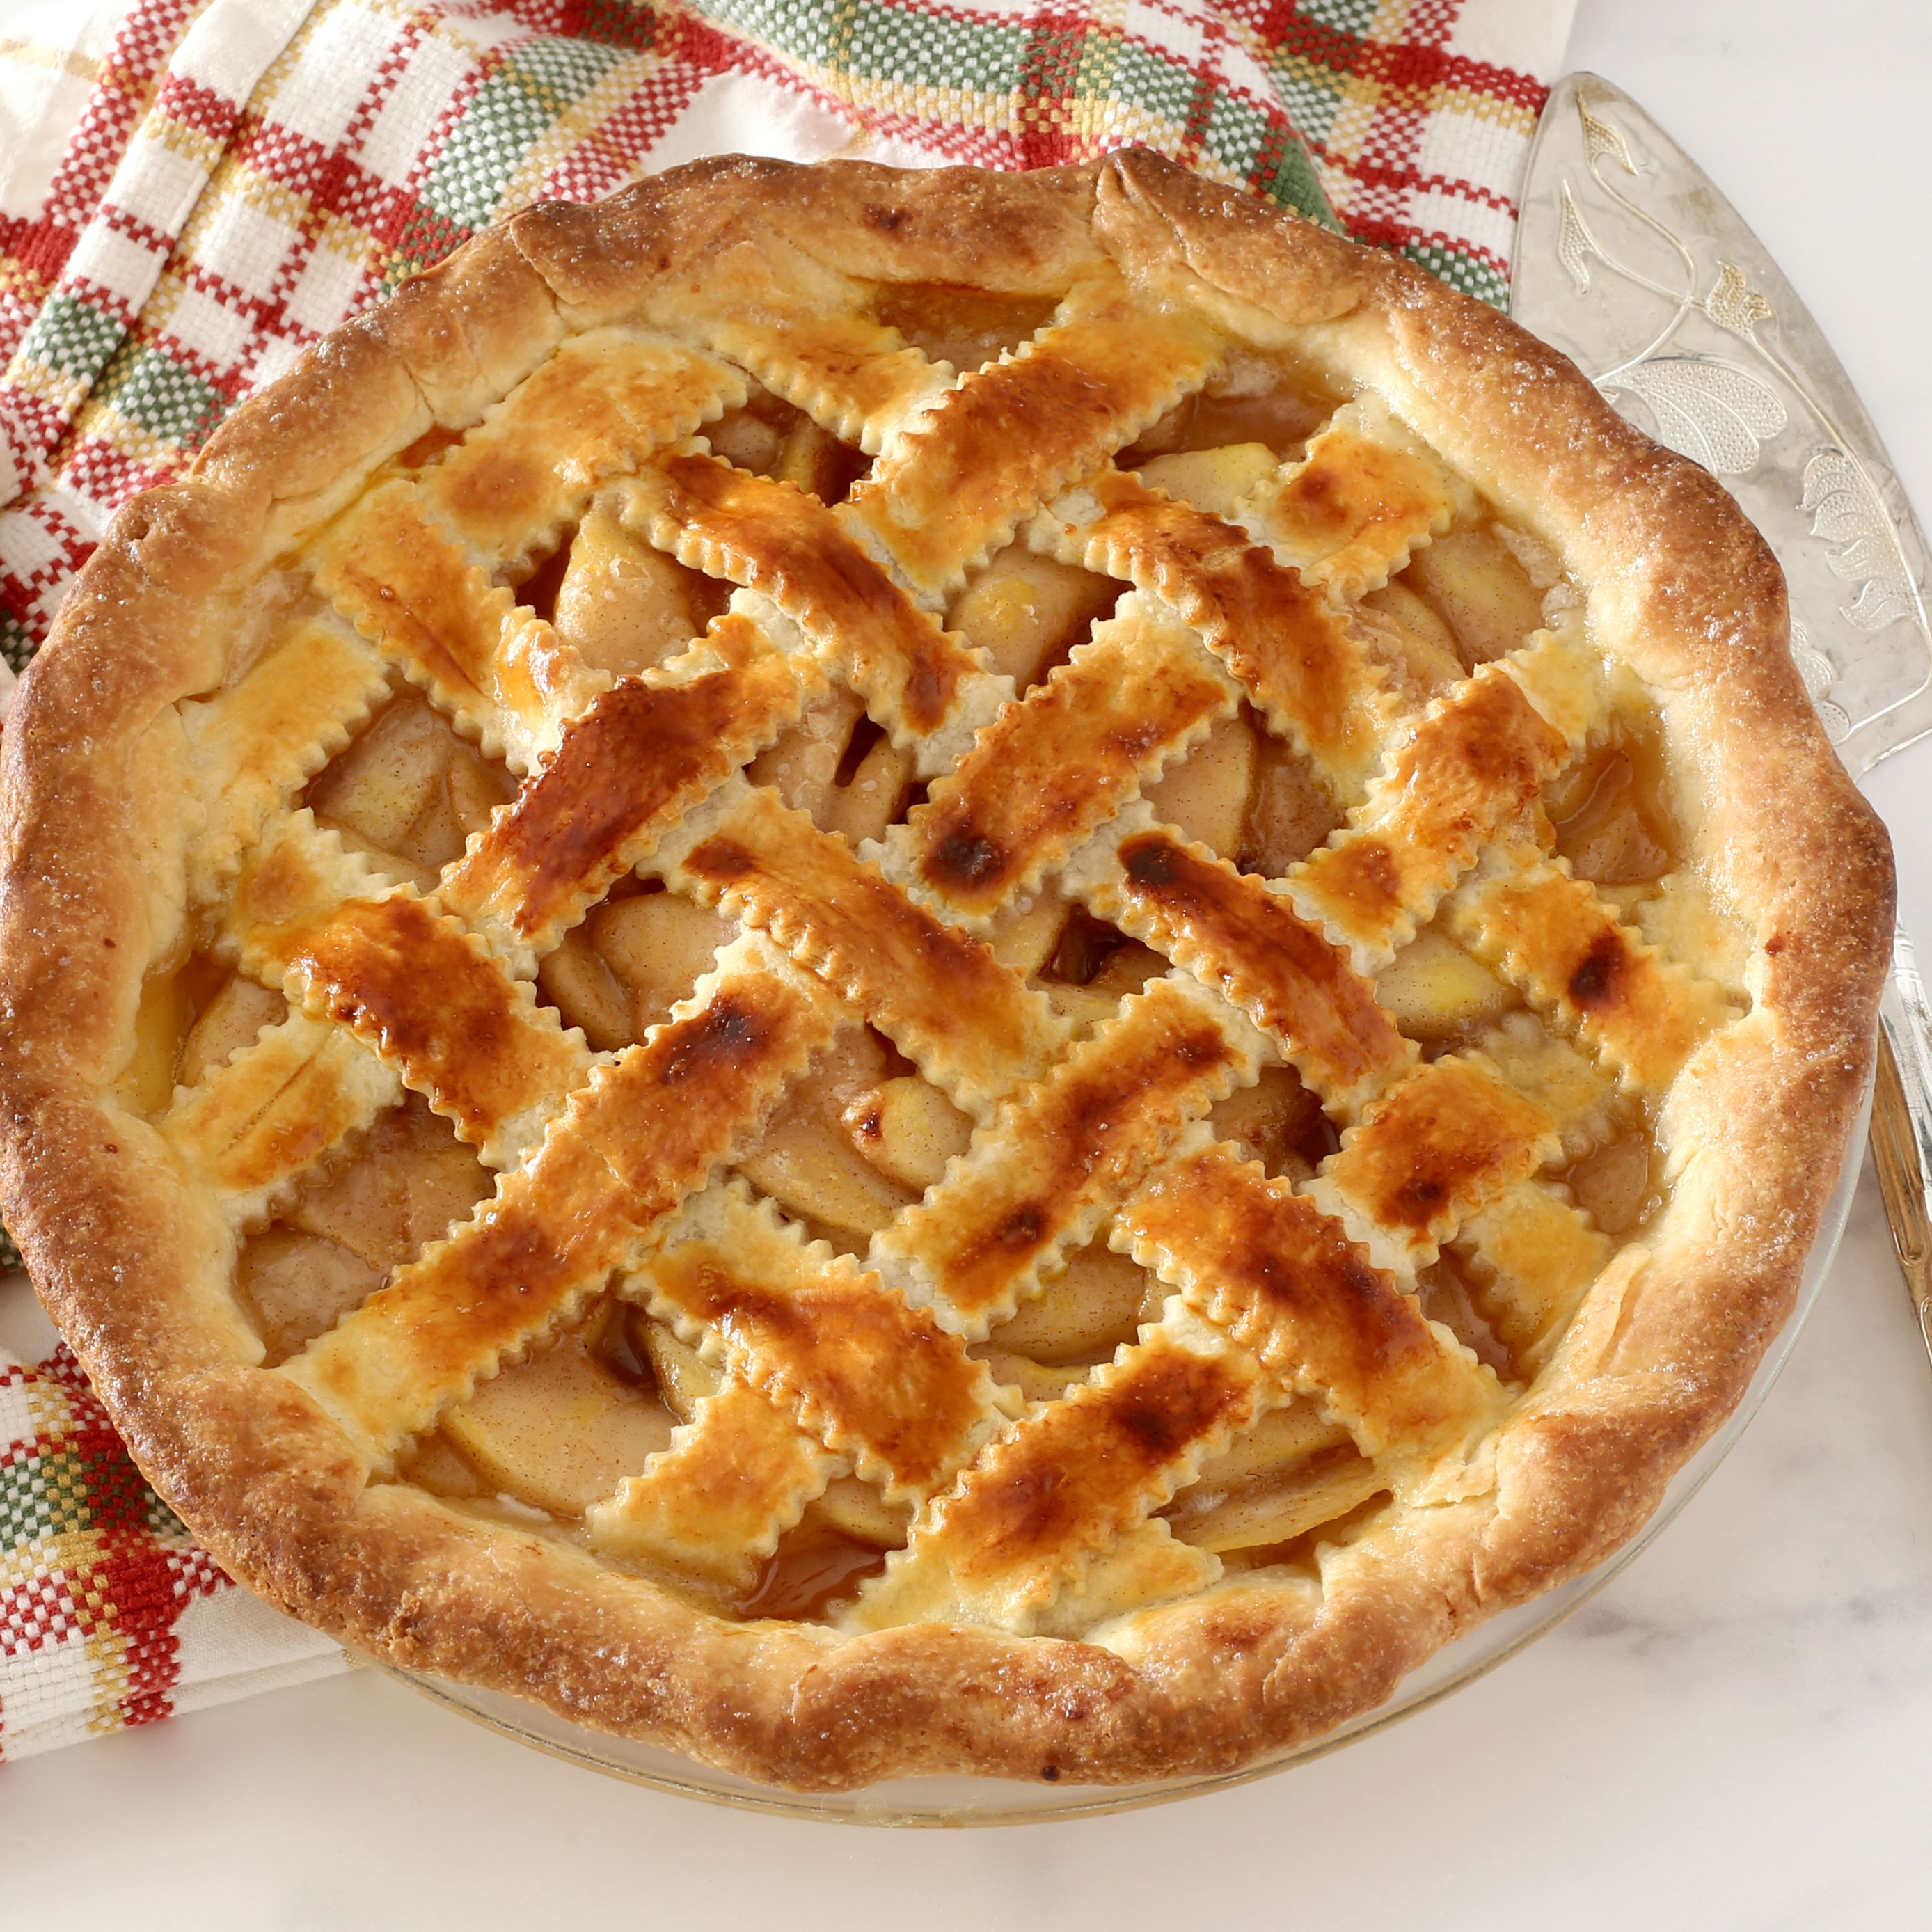 fresh-pear-pie-with-a-lattice-top-crust-